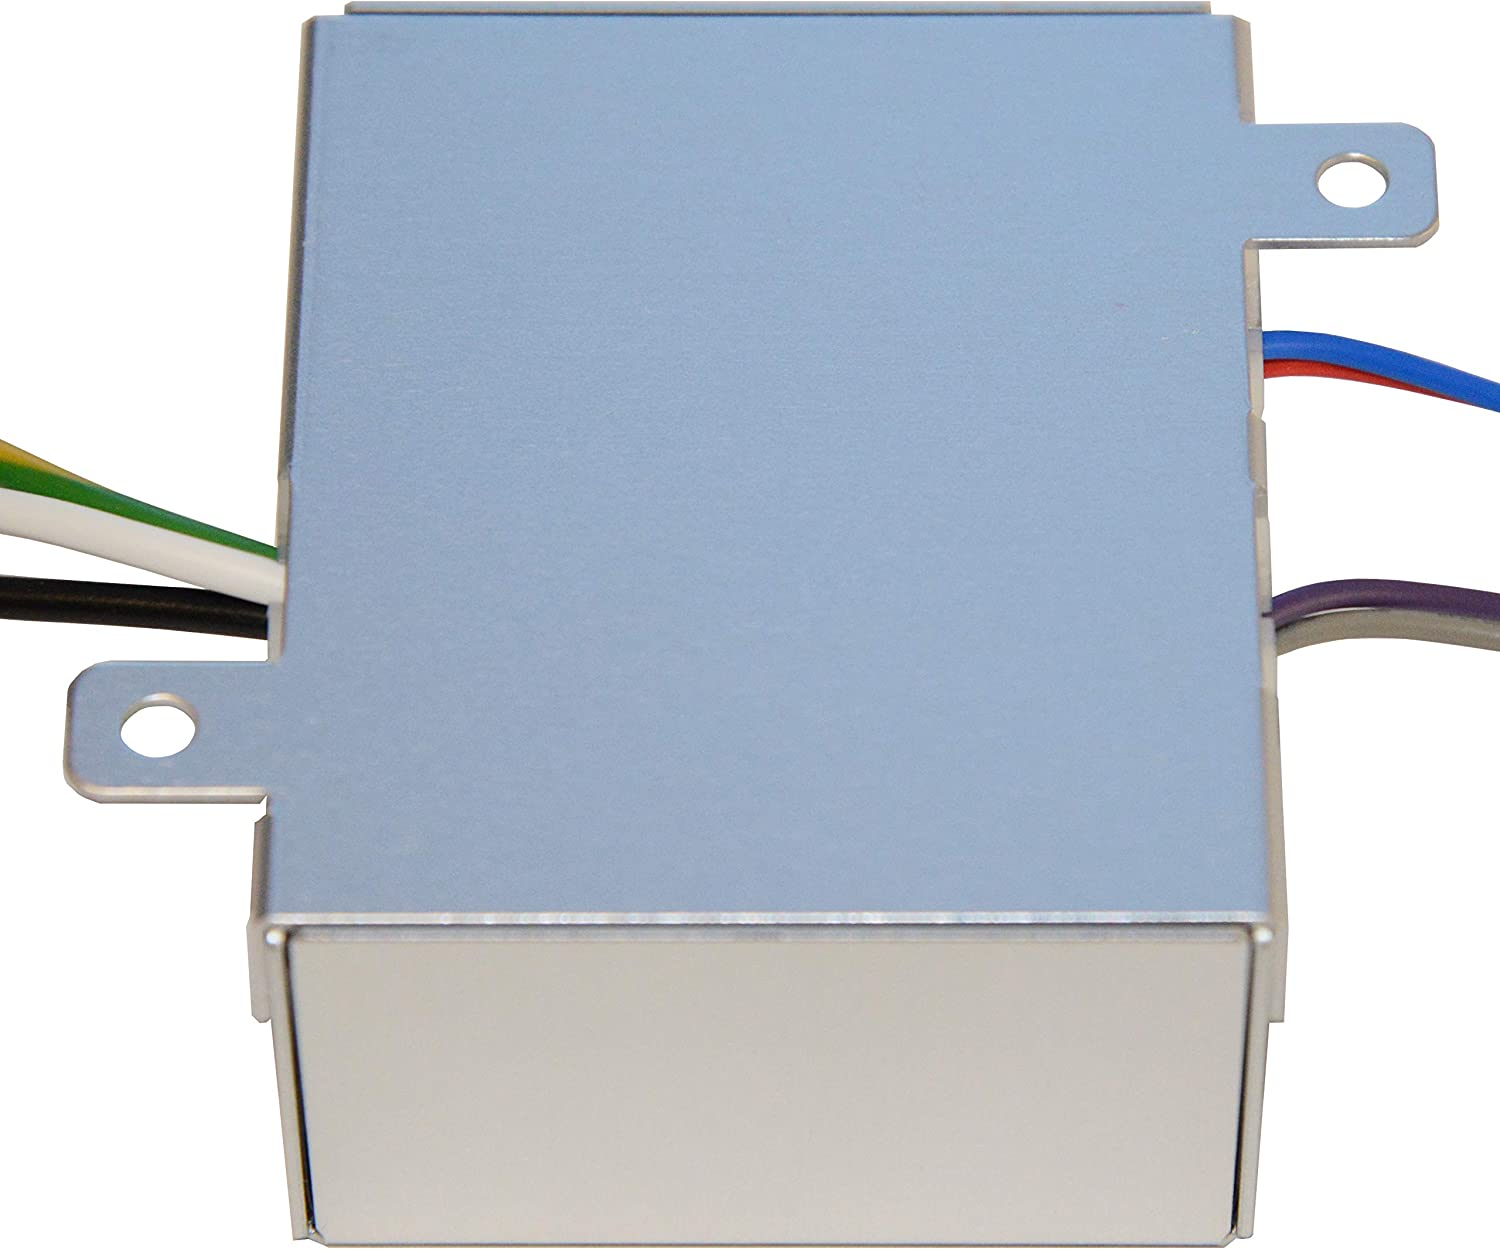 PowerSelect PS60U700C30H 120-277VAC 700mA 20-42VDC Constant Current LED Driver 0-10V Dimming